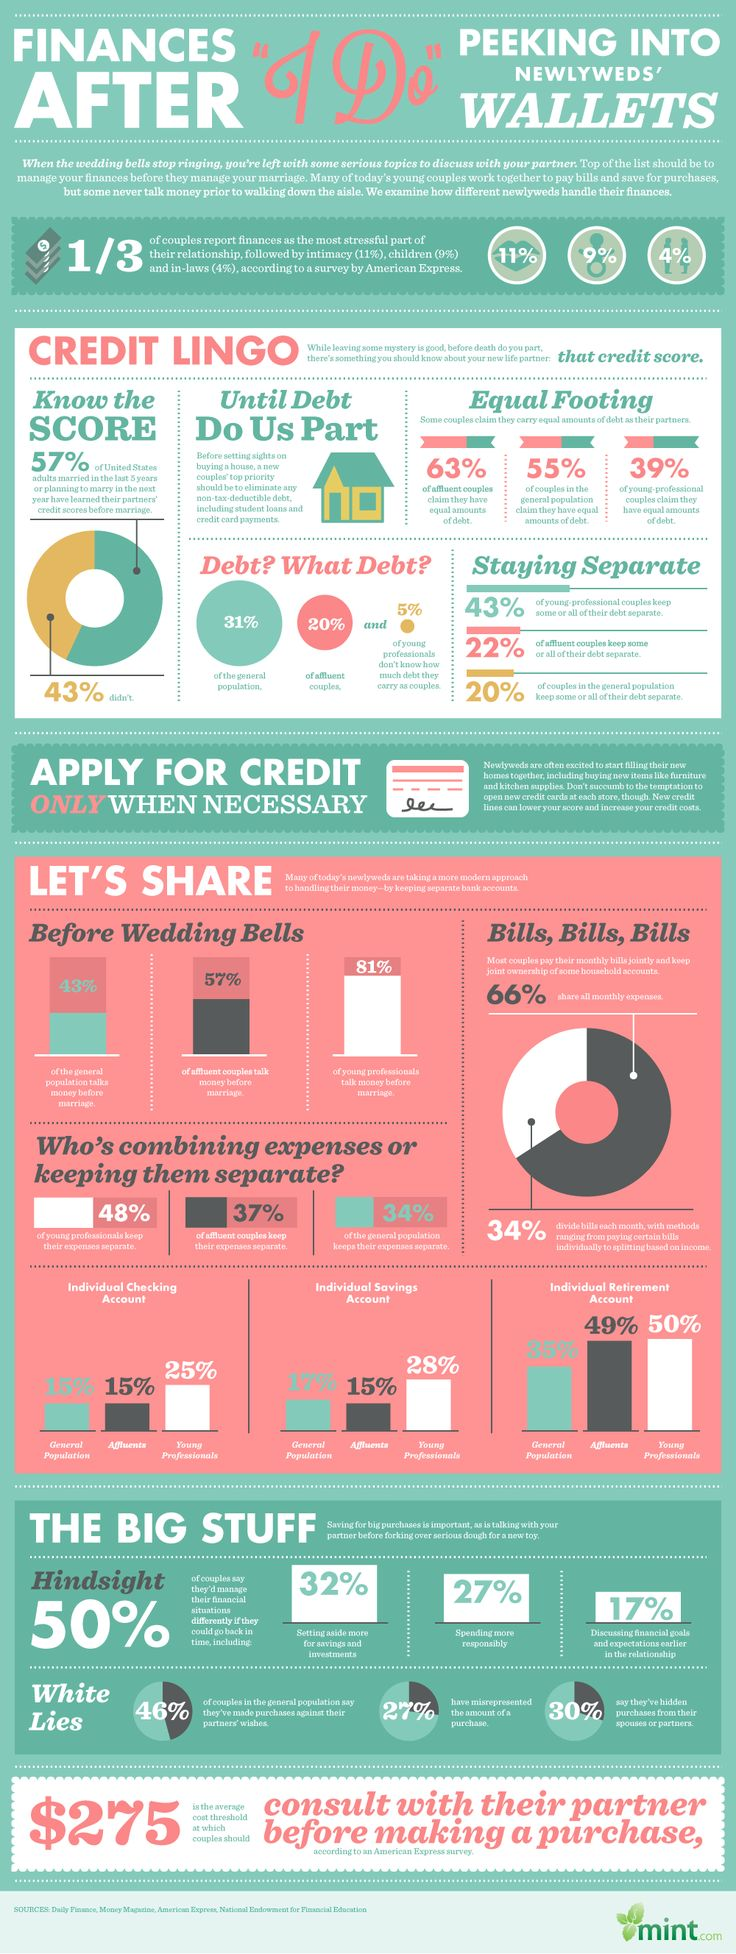 "Finances After ""I Do"" – Taking a Peek Into Newlyweds' Wallets: http://www.mint.com/blog/trends/finances-after-i-do-taking-a-peek-into-newlyweds-wallets-0513/?display=wide"